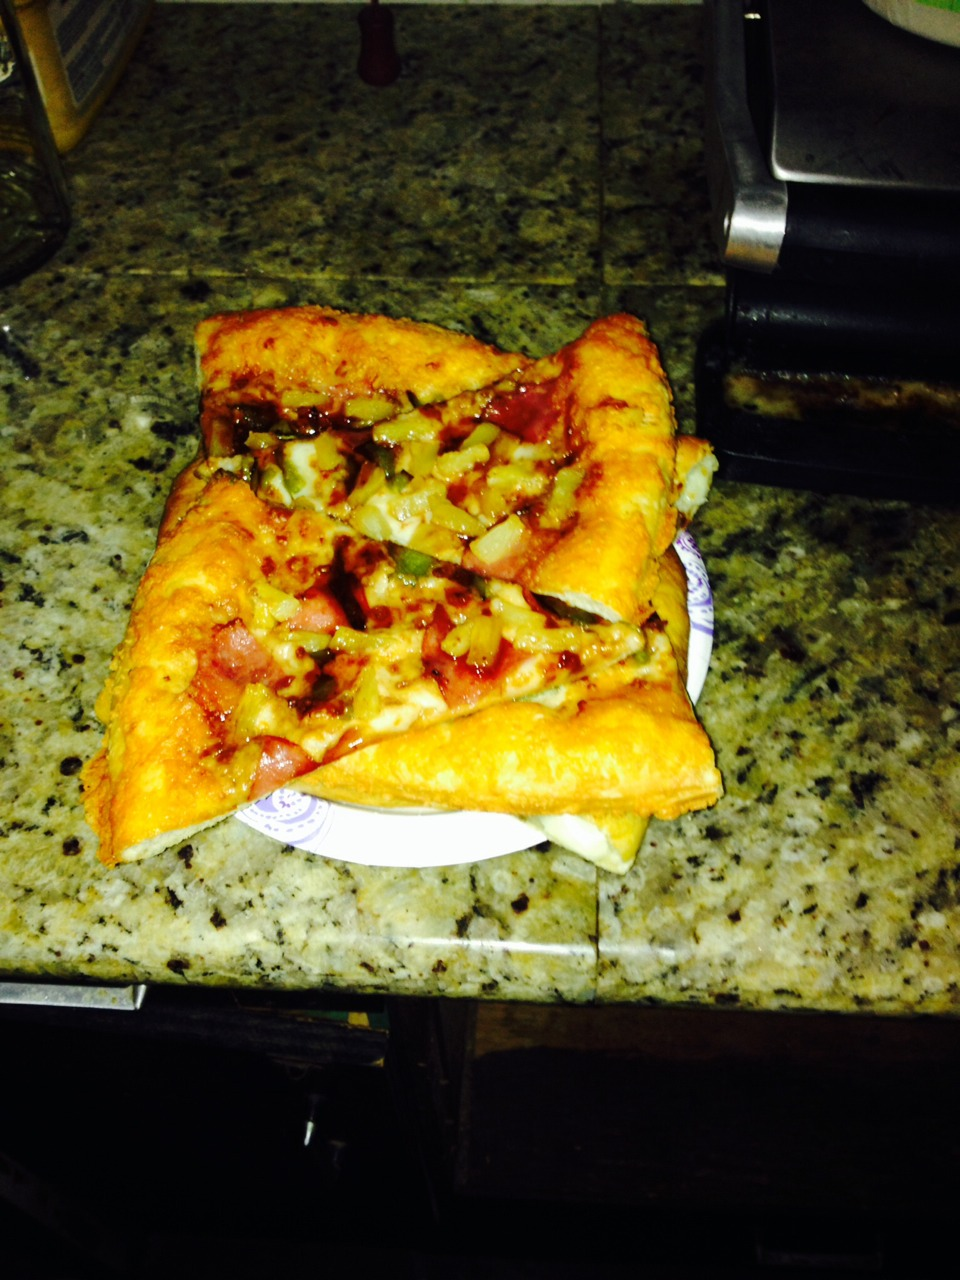 Cant fit the whole pizza box in the fridge? Stack pizza crust to tip two pieces at a time all the way until its a tower!